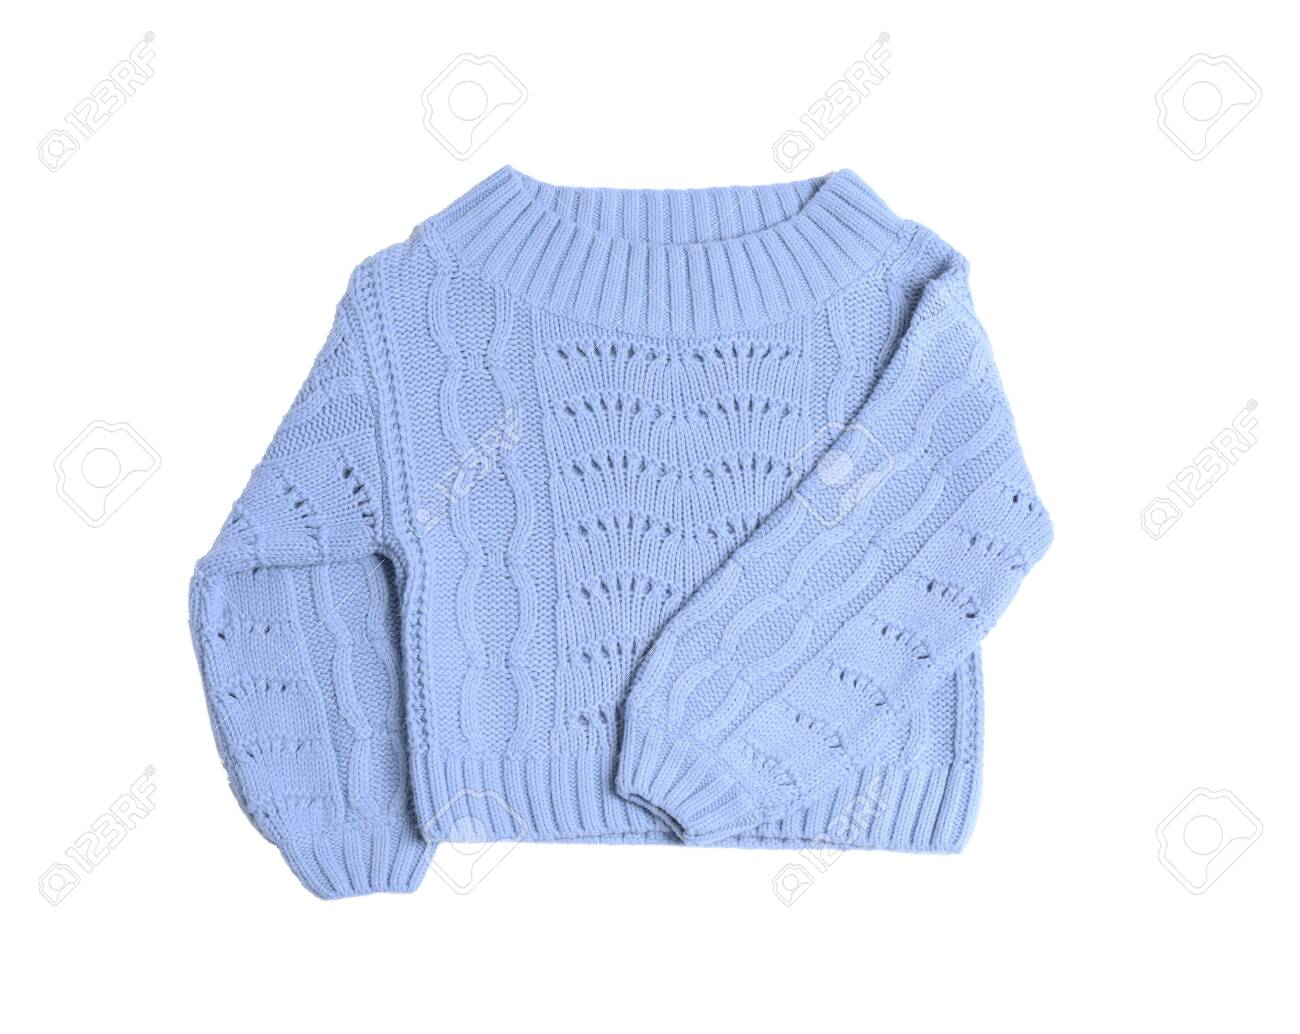 Light blue knitted sweater on white background, top view